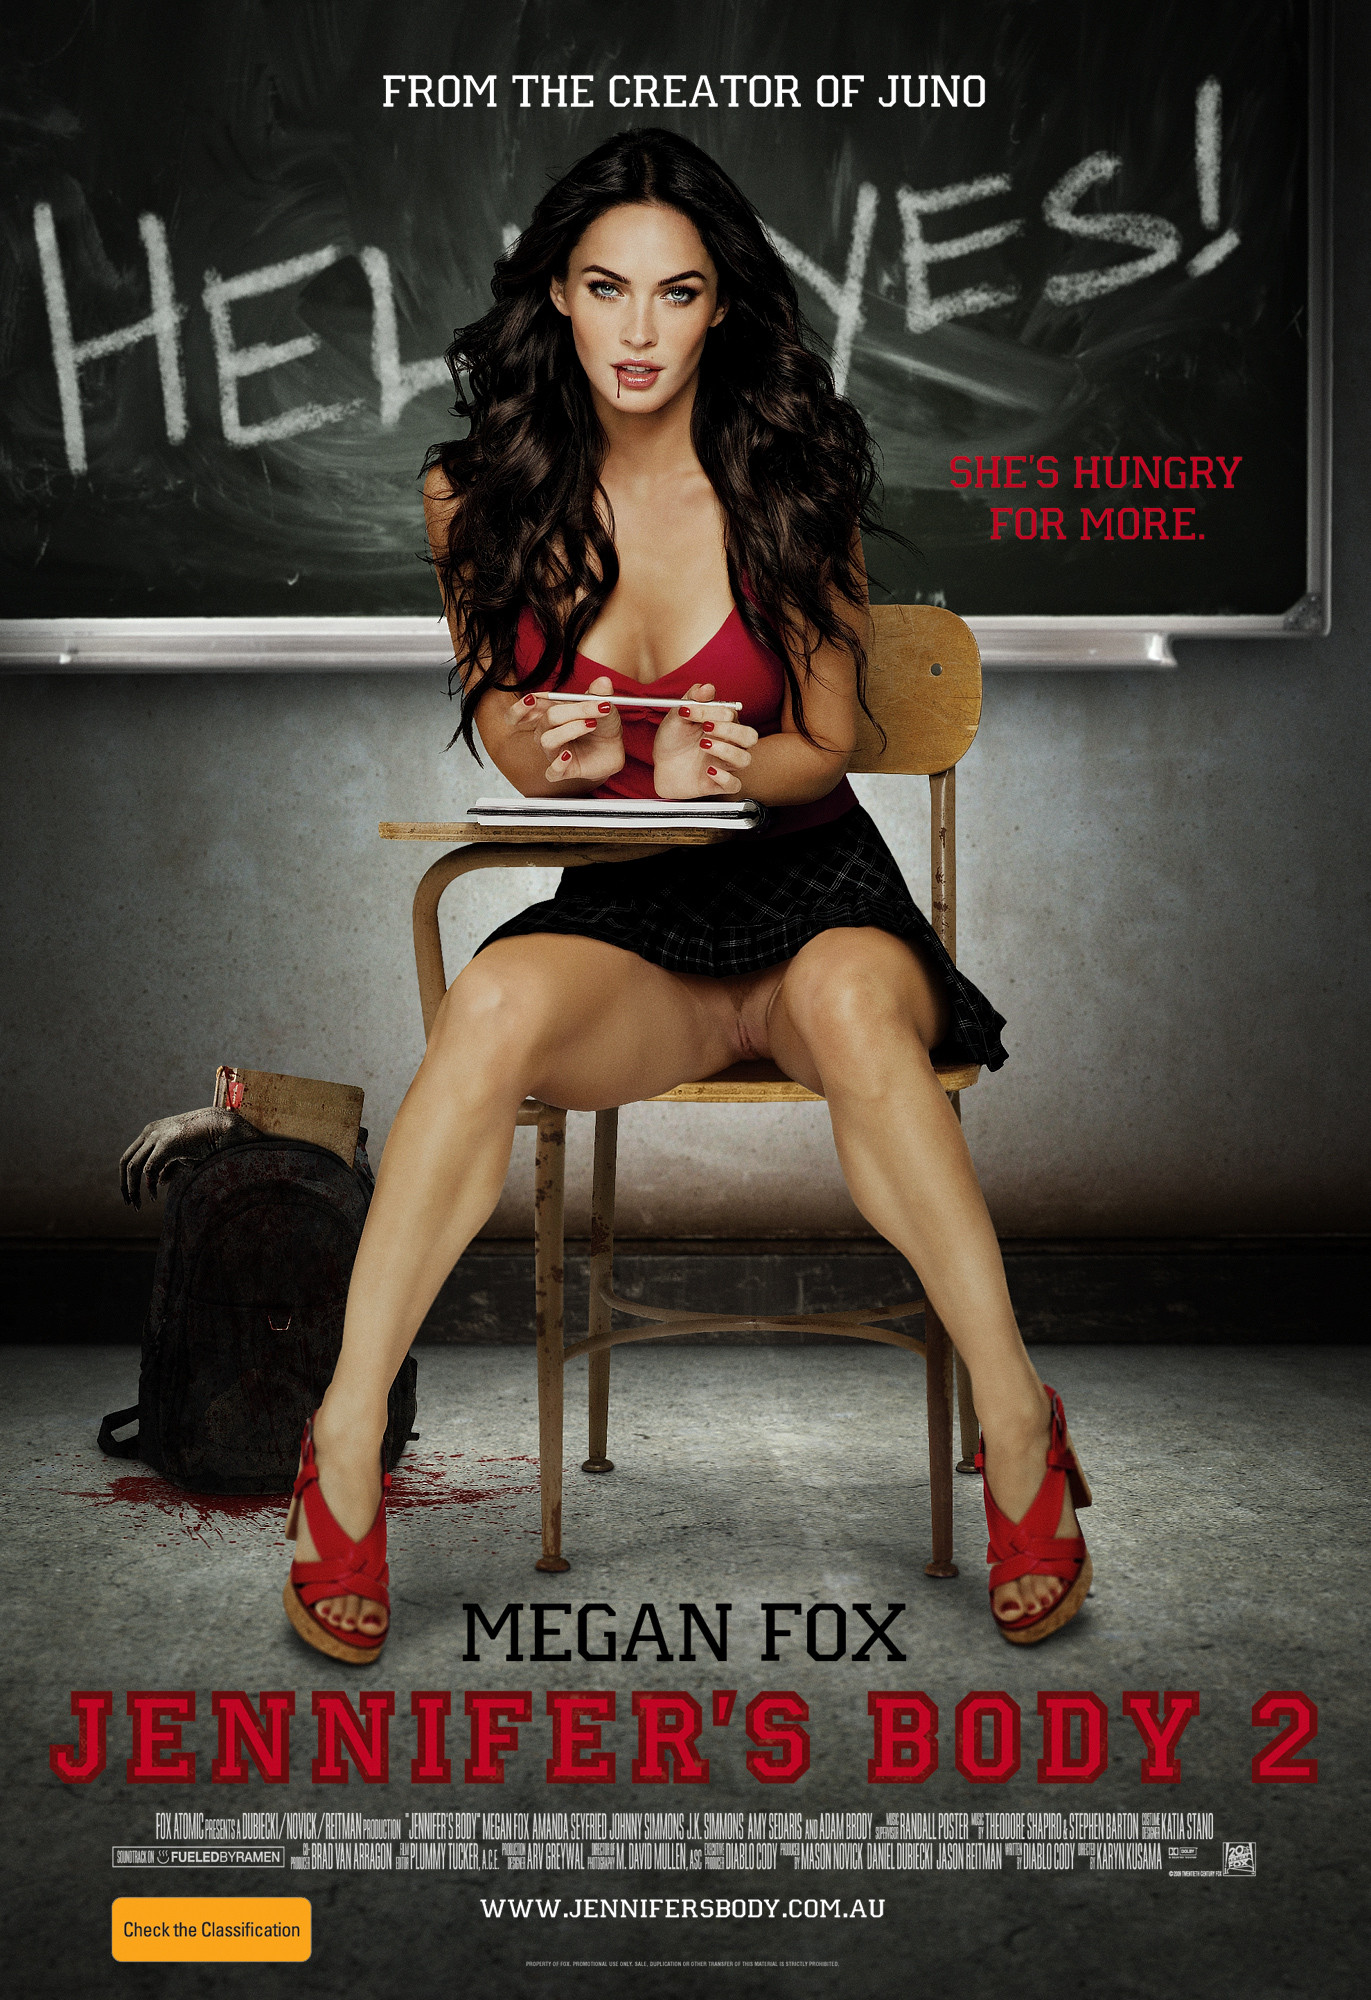 Fox s body jennifer movie megan